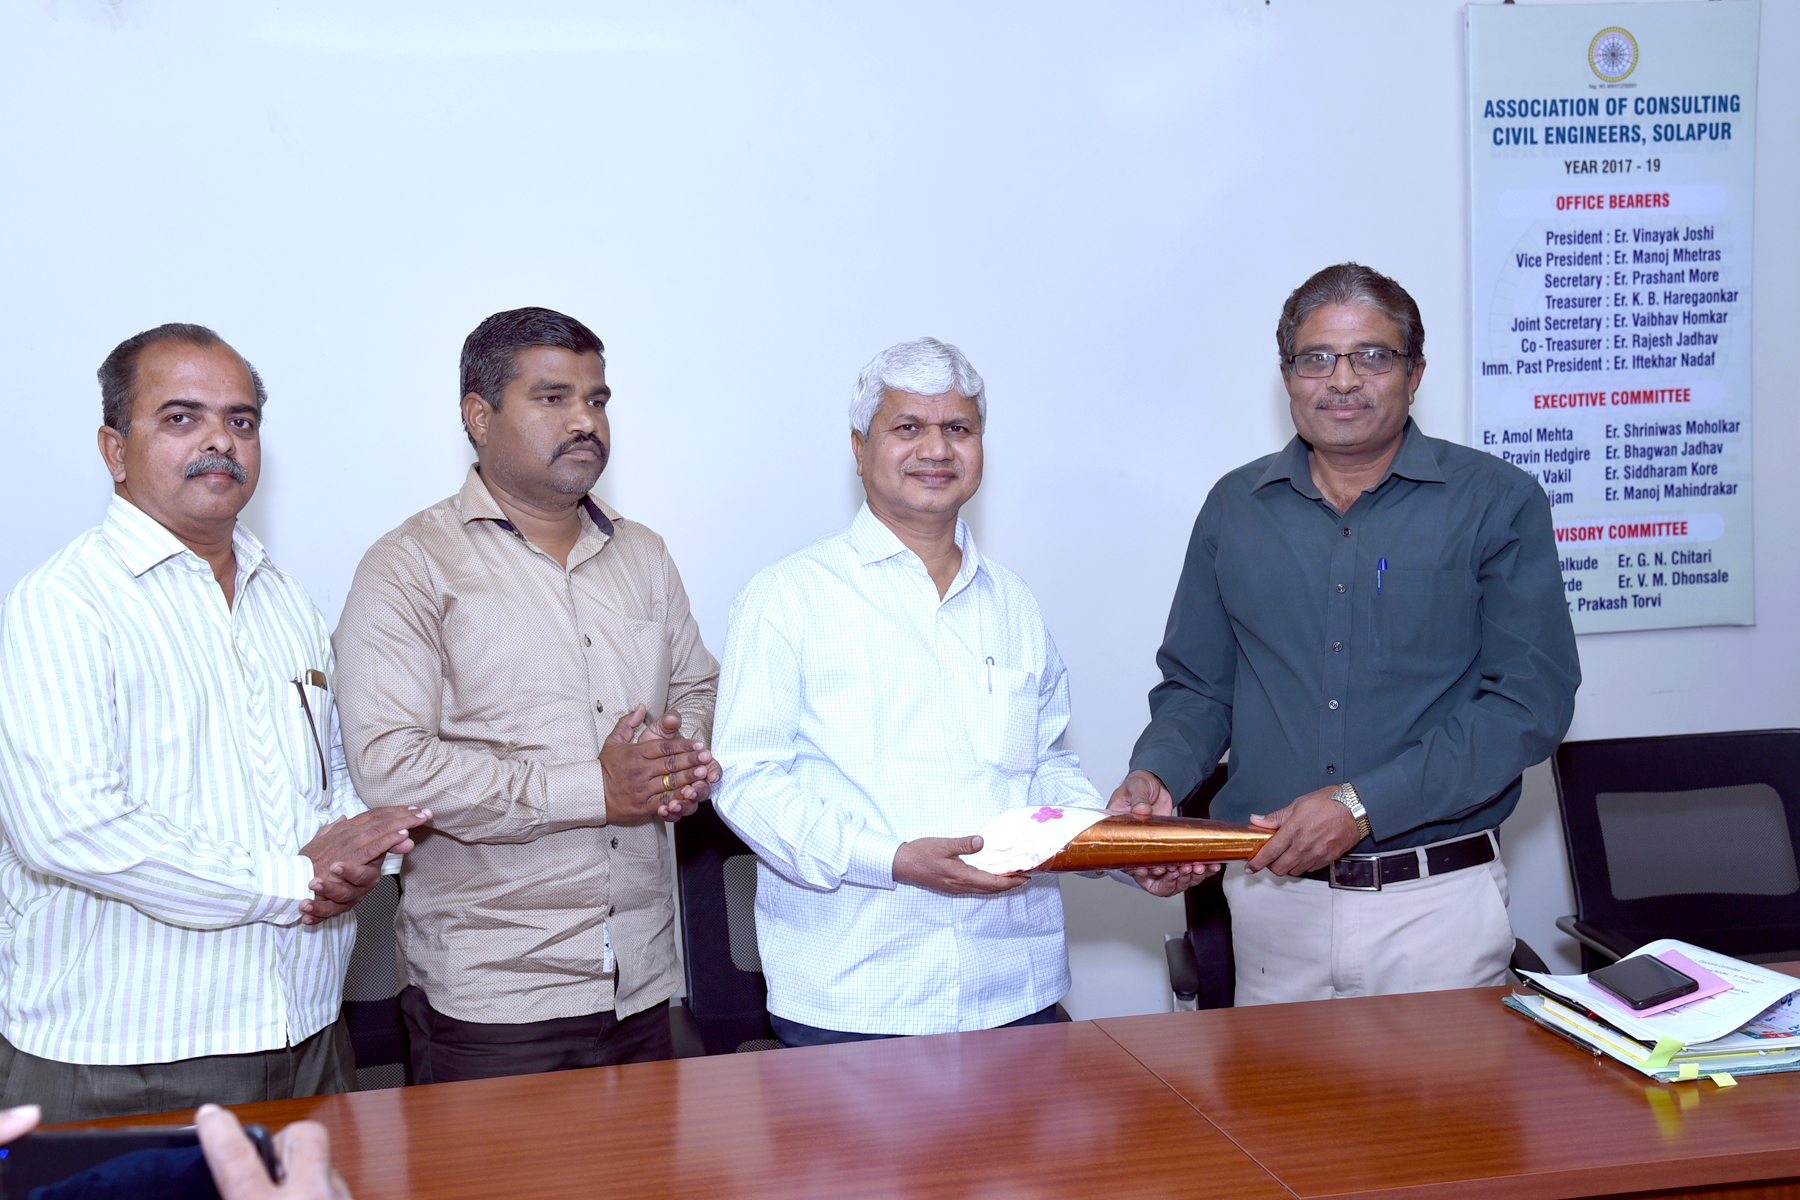 Inauguration of ACCE Solapur